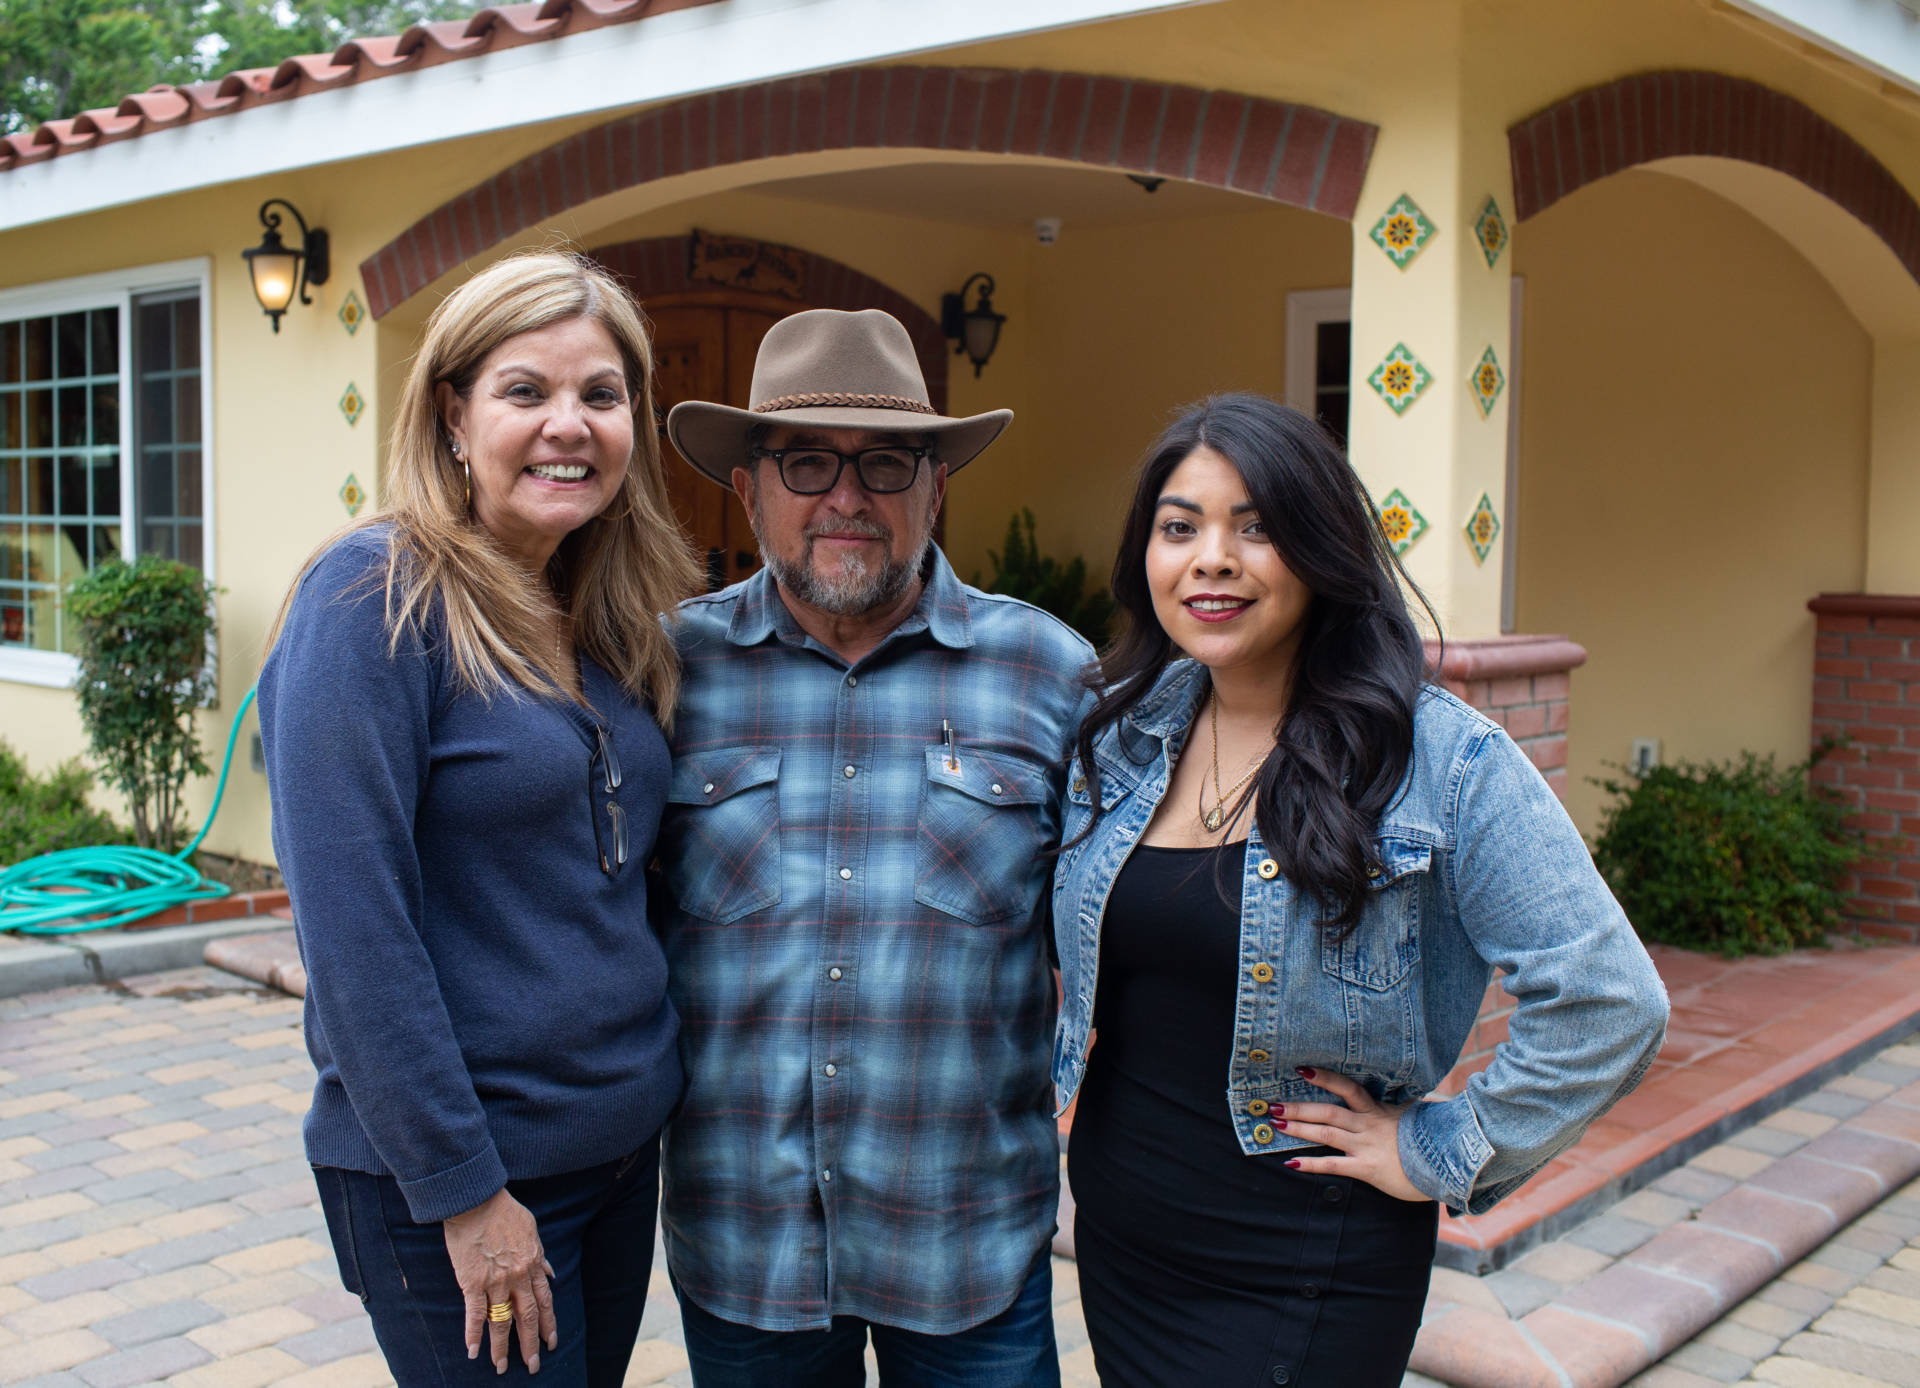 Helen, Juan, and Monica Rivera in front of their home, on May 26, 2019 in Chino. James Berna/KPCC